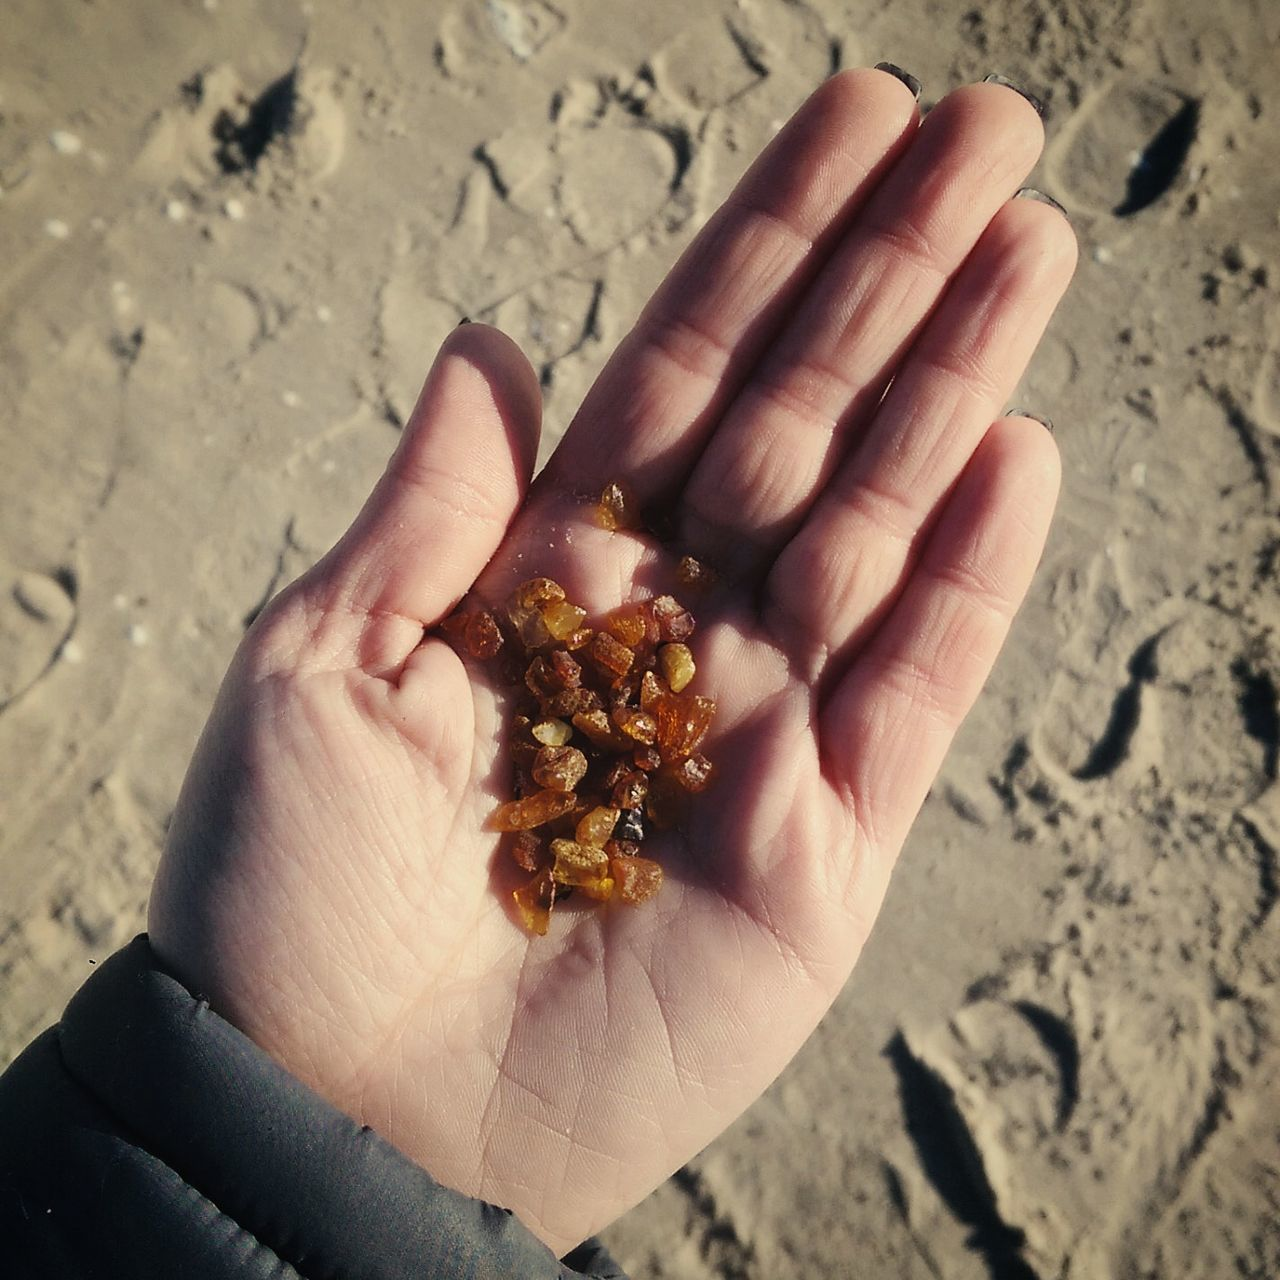 Baltic Amber Beach Personal Perspective Beach Combing Curonian Spit